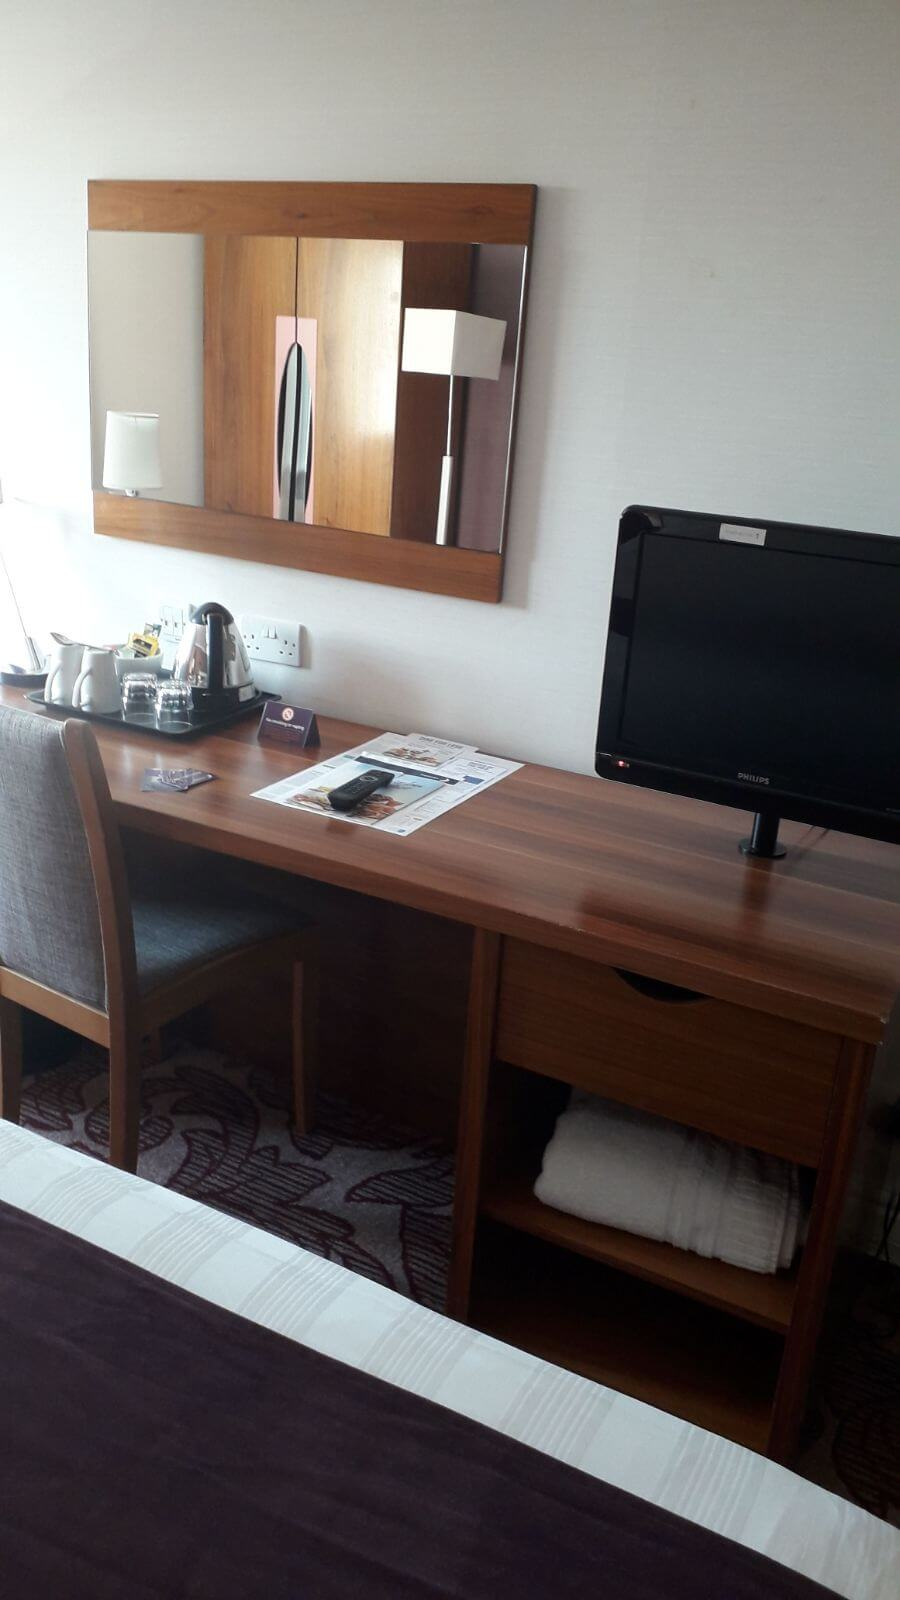 My favourite affordable hotel brand is Premier Inn. You come to know and expect a certain standard of quality. Check out my review of Premier Inn Manchester Old Trafford. I even gave it a rating out of five too.